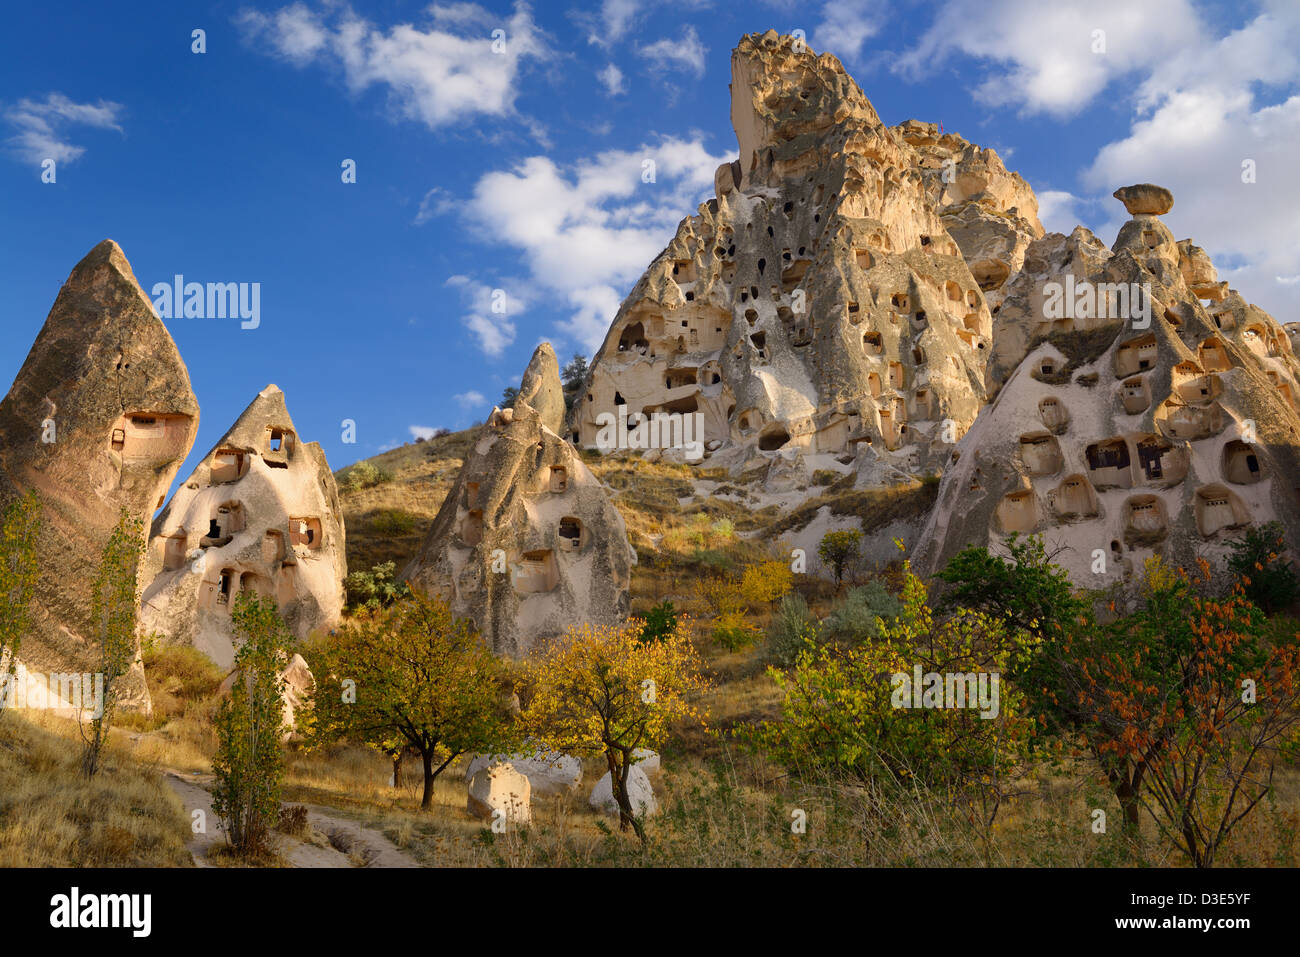 Fairy chimneys and ancient Uchisar Castle carved out of volcanic tuff Cappadocia Turkey - Stock Image